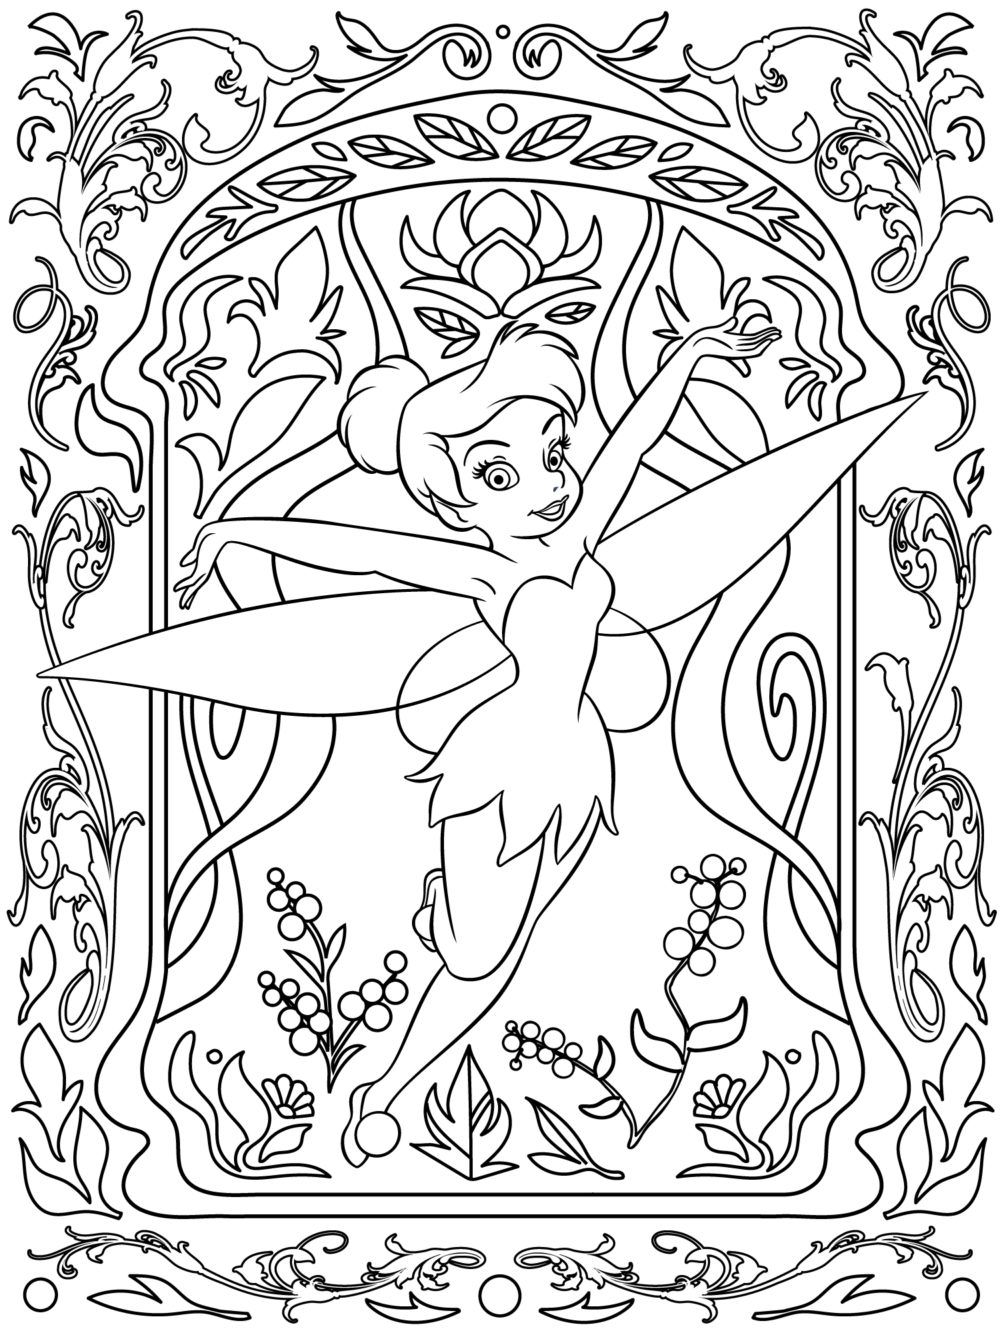 Adult colouring page adultcolouring Disney coloring